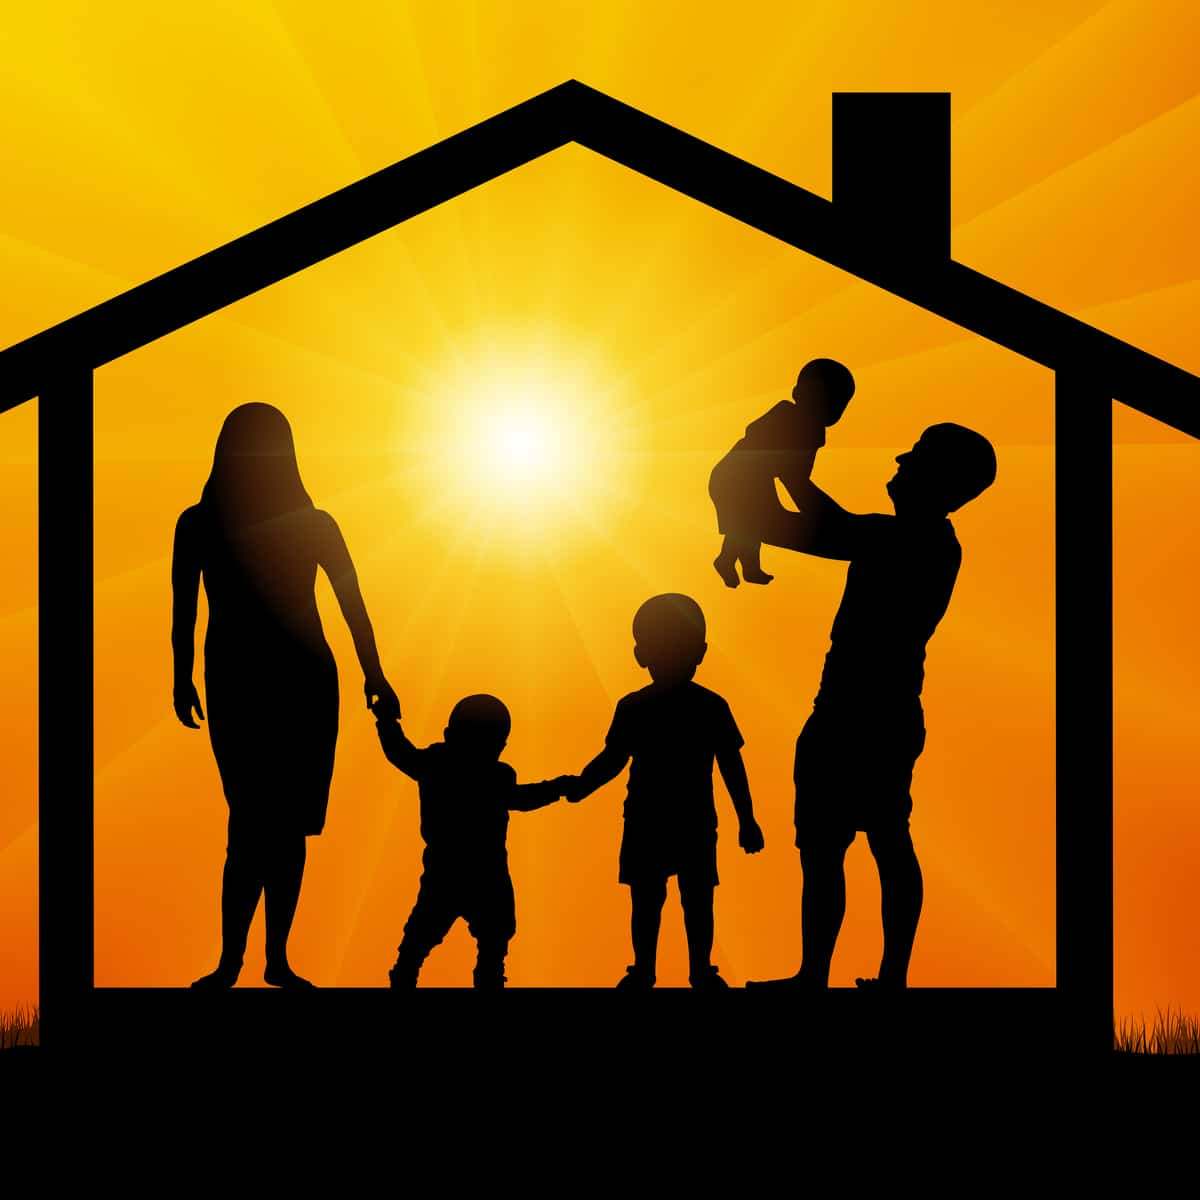 Silhouette of family in home